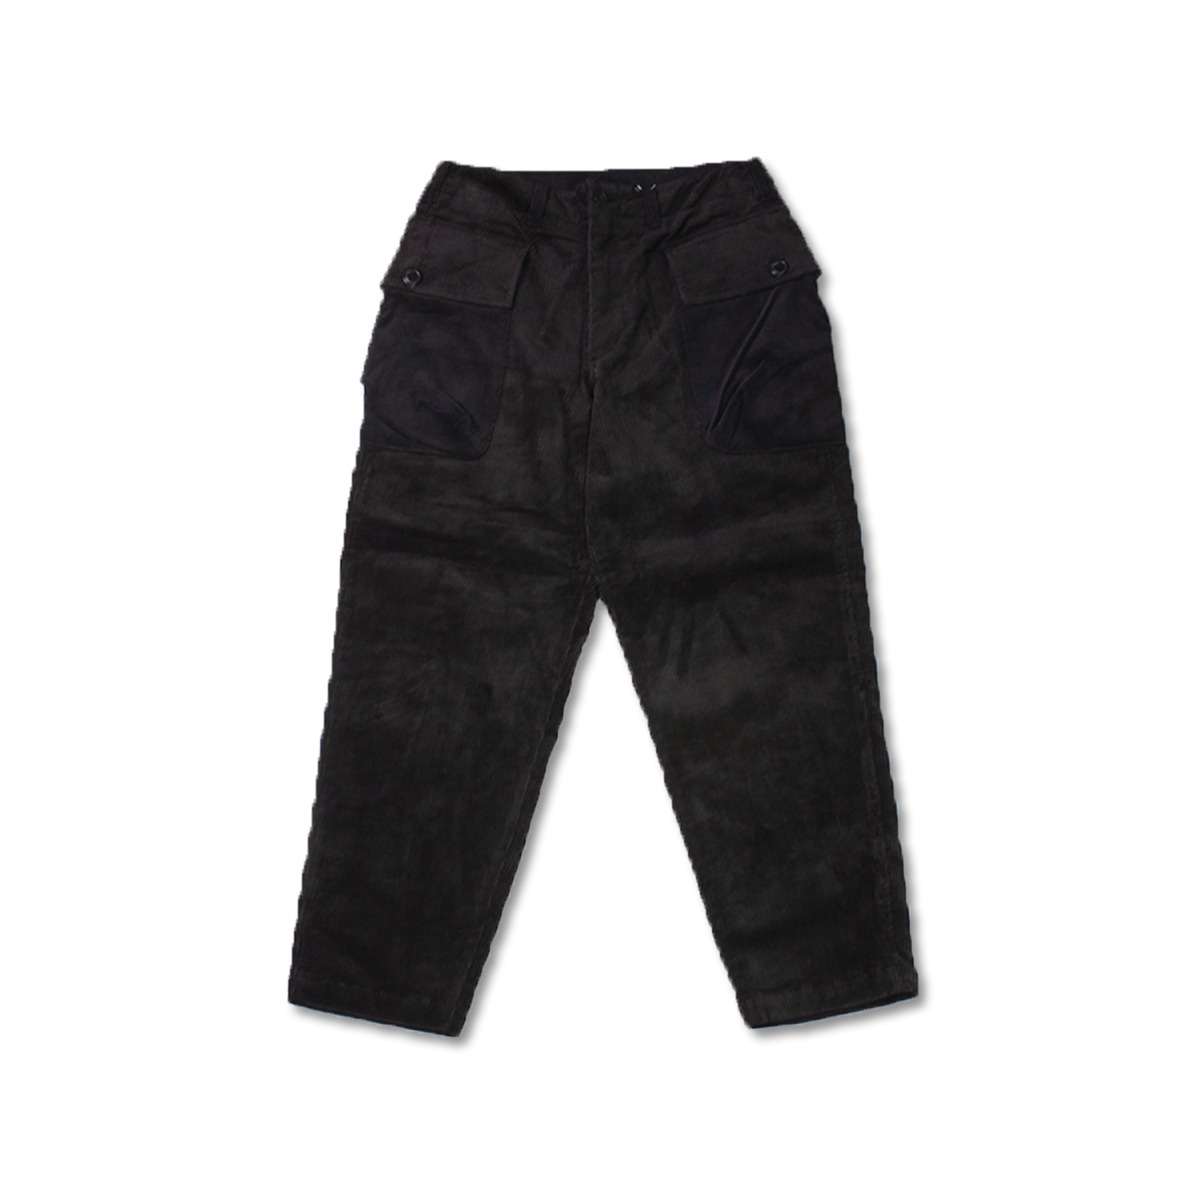 [SAGE DE CRET] PATCHWORK PANTS 'BLACK'